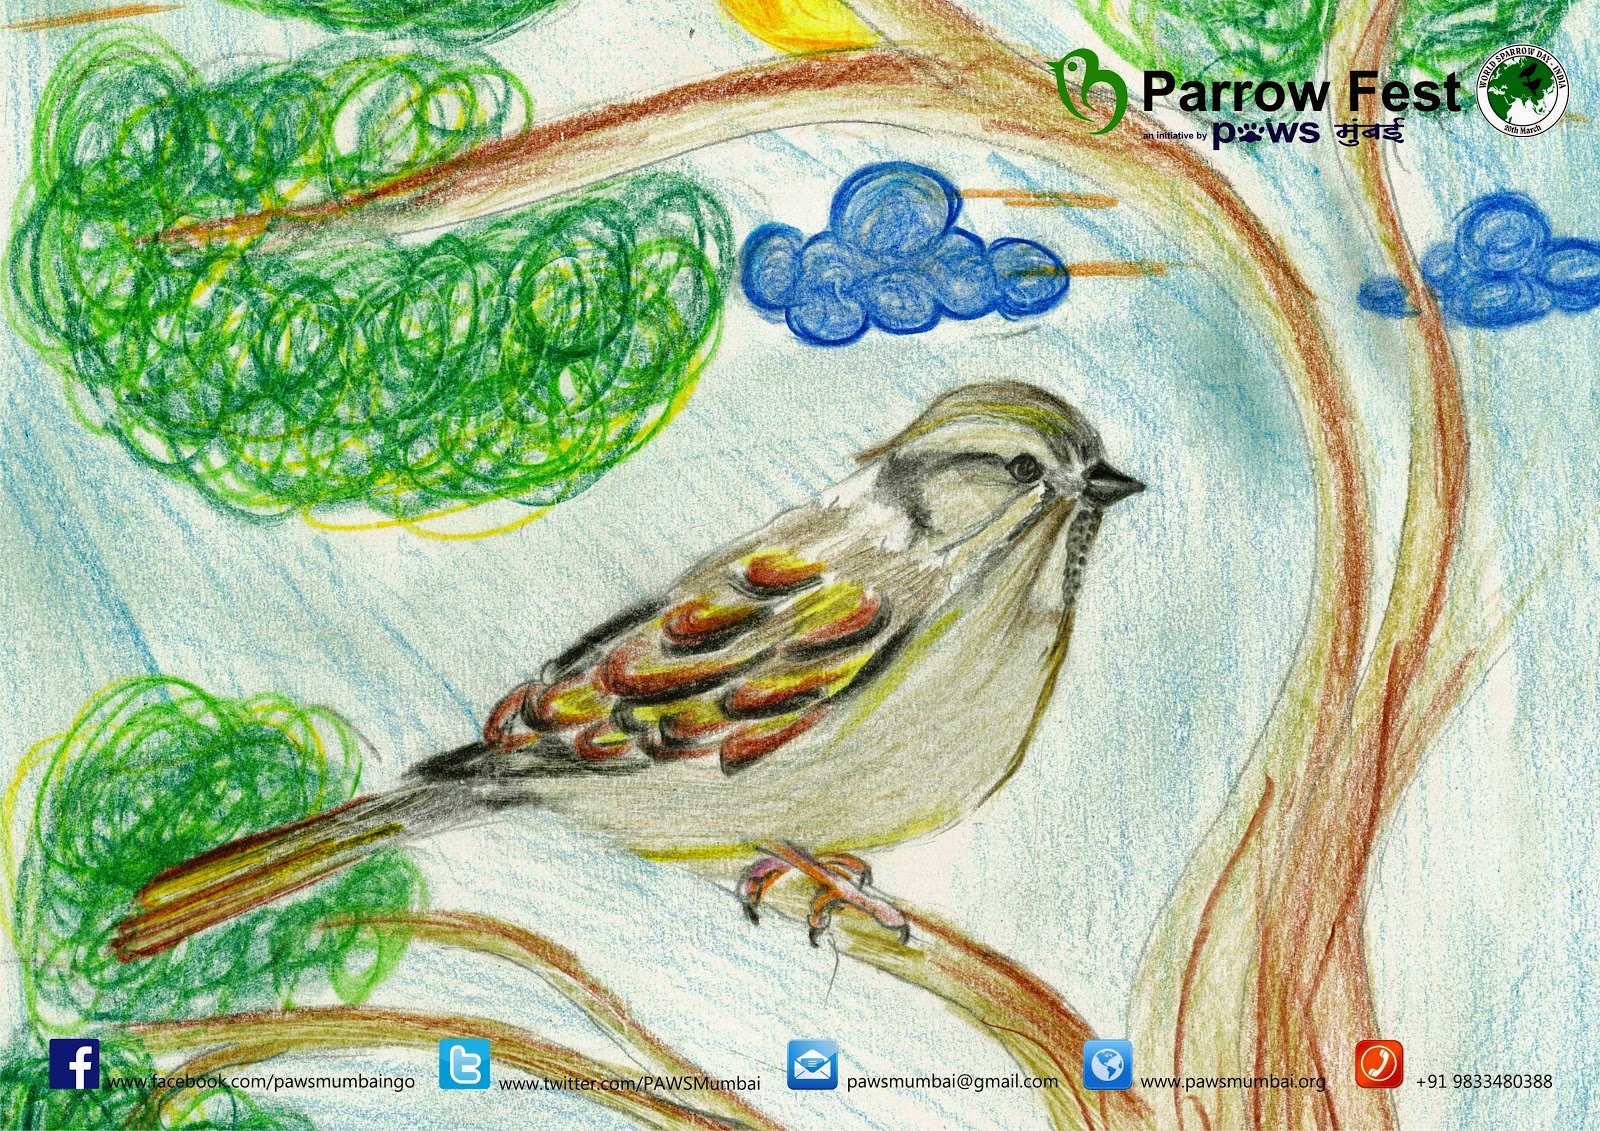 1600x1131 Sparrow Fest Sparrow Fest Competition Winners Sparrow Drawing